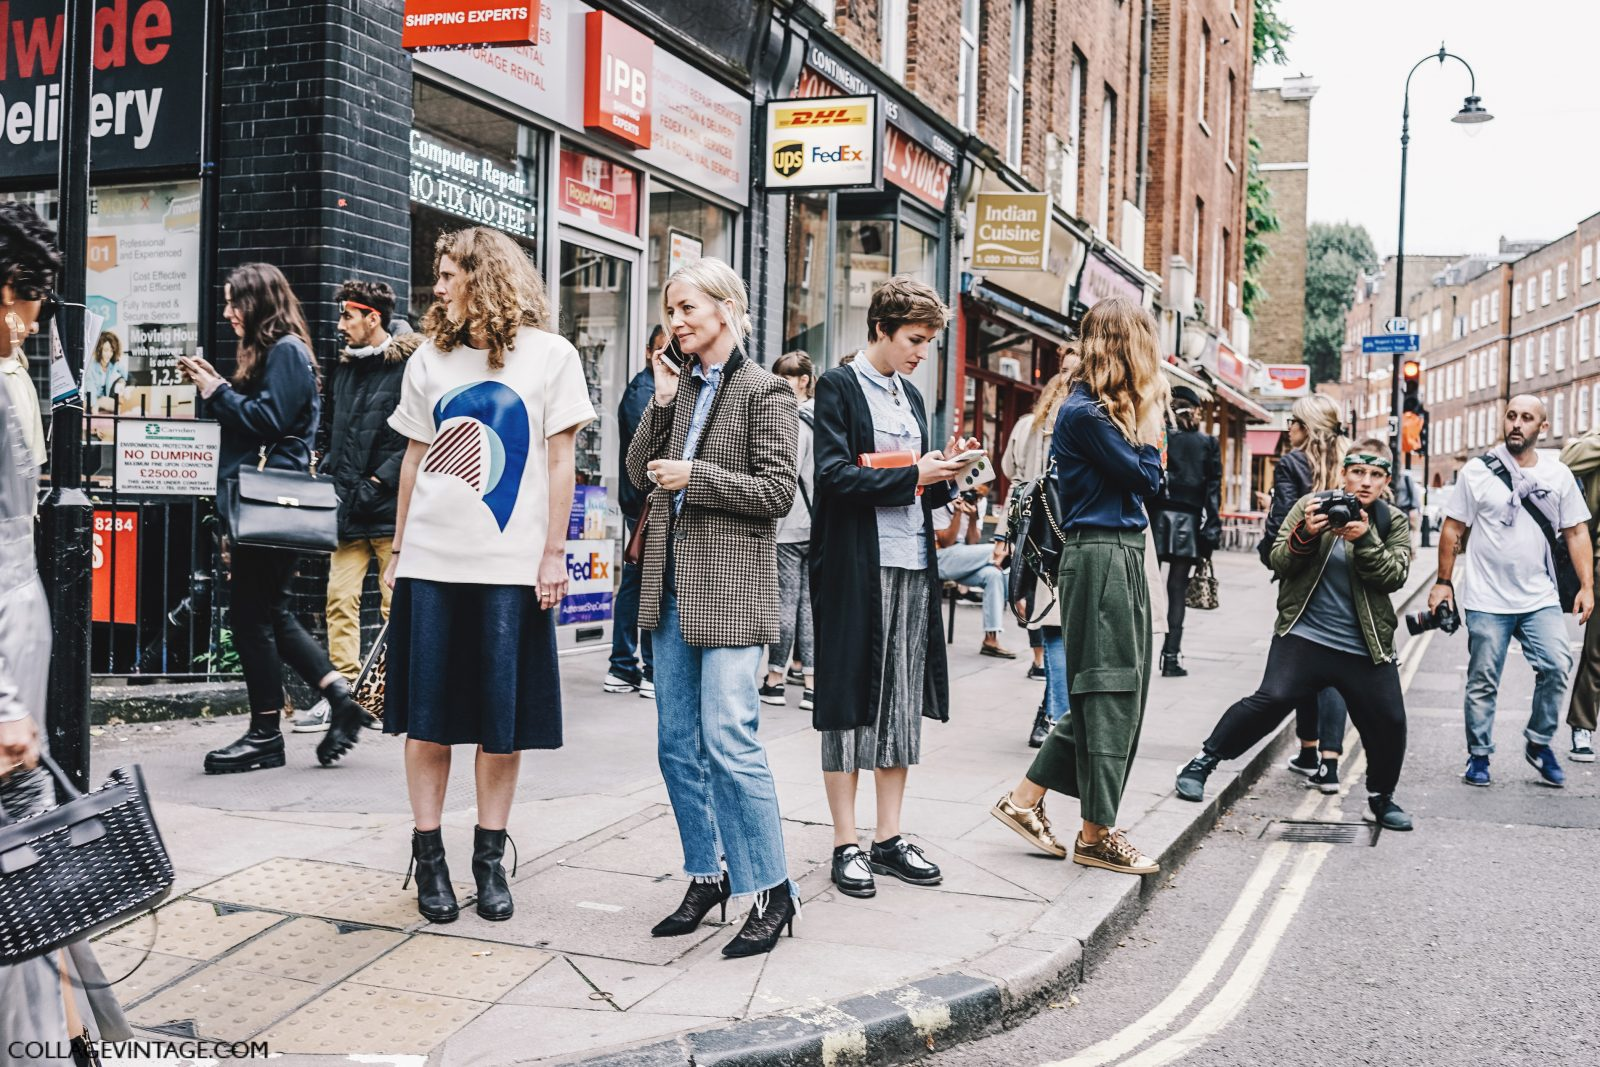 lfw-london_fashion_week_ss17-street_style-outfits-collage_vintage-vintage-jw_anderson-house_of_holland-5